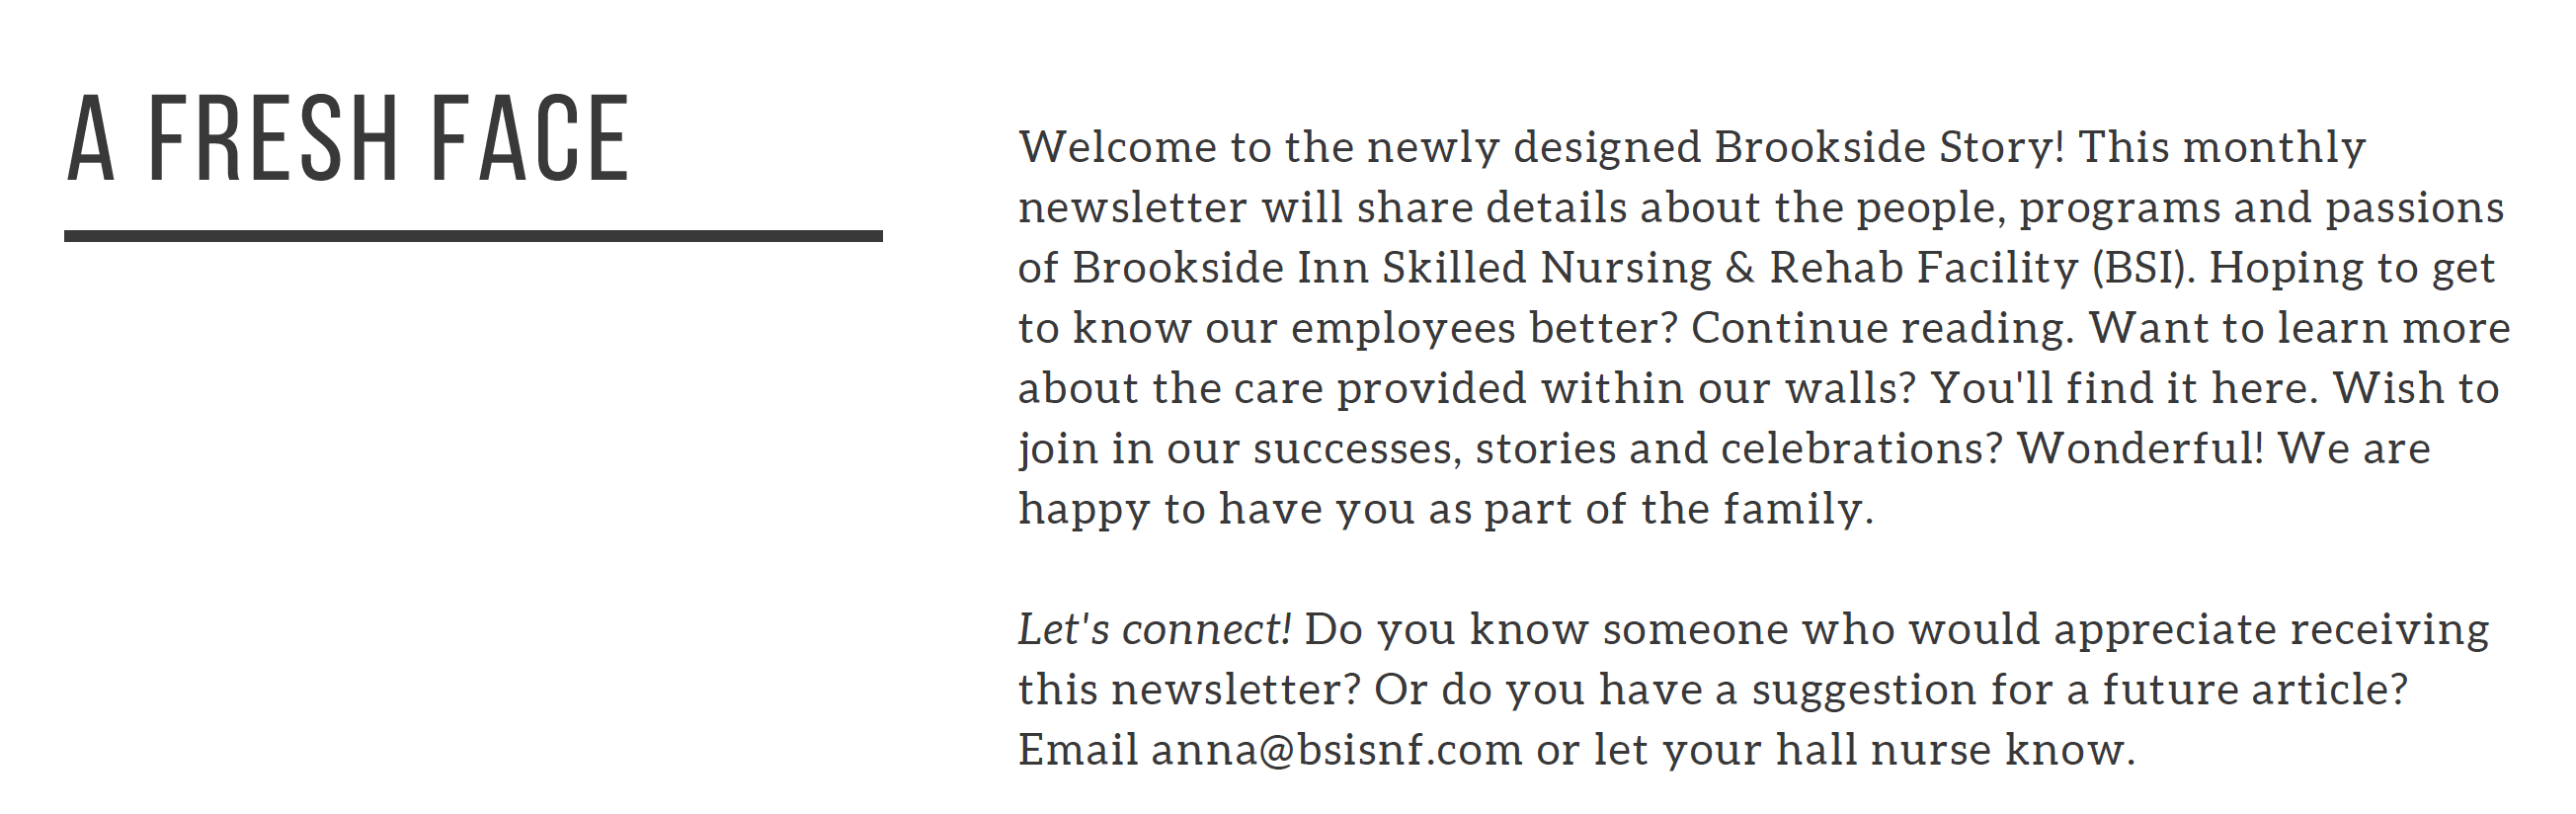 A fresh face - welcome to the newly designed Brookside Inn.